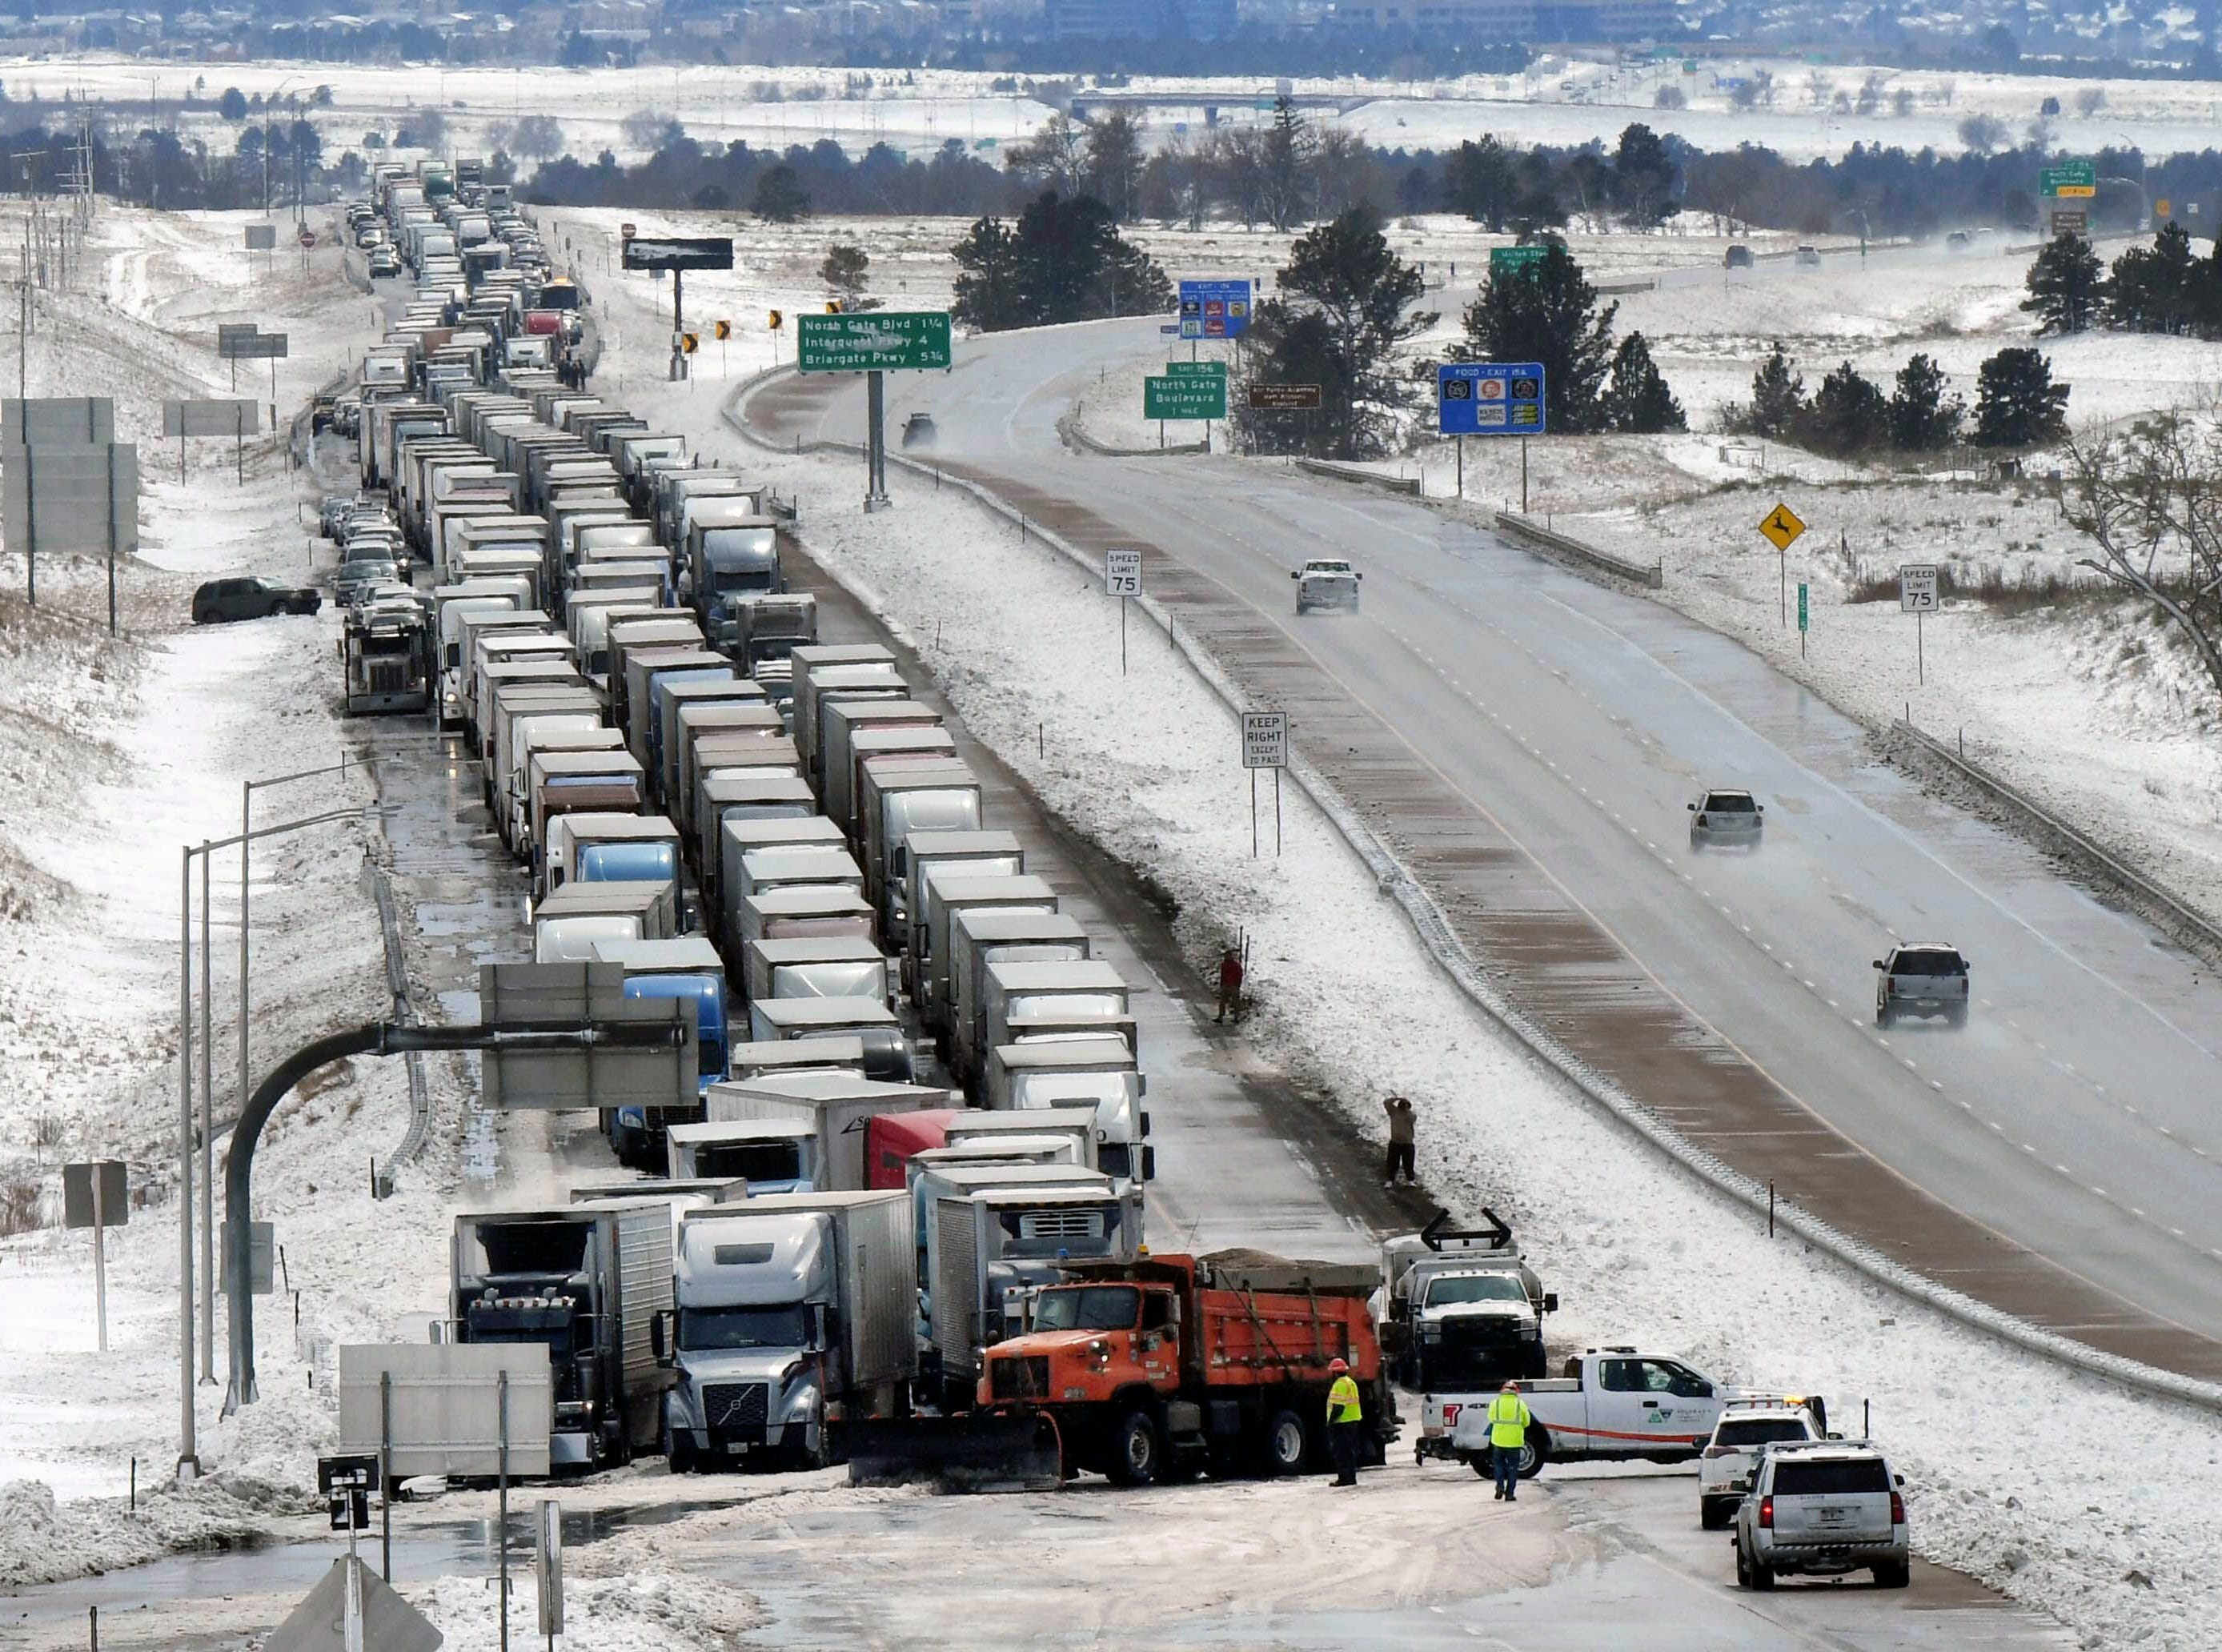 Trucks line I-25 south of Baptist Rd. Thursday, March 14, 2019 in Colorado Springs, Colo. A blizzard that paralyzed parts of Colorado and Wyoming barreled into the Midwest on Thursday, bringing whiteout conditions to western Nebraska and dumping heavy rain that prompted evacuations in communities farther east.